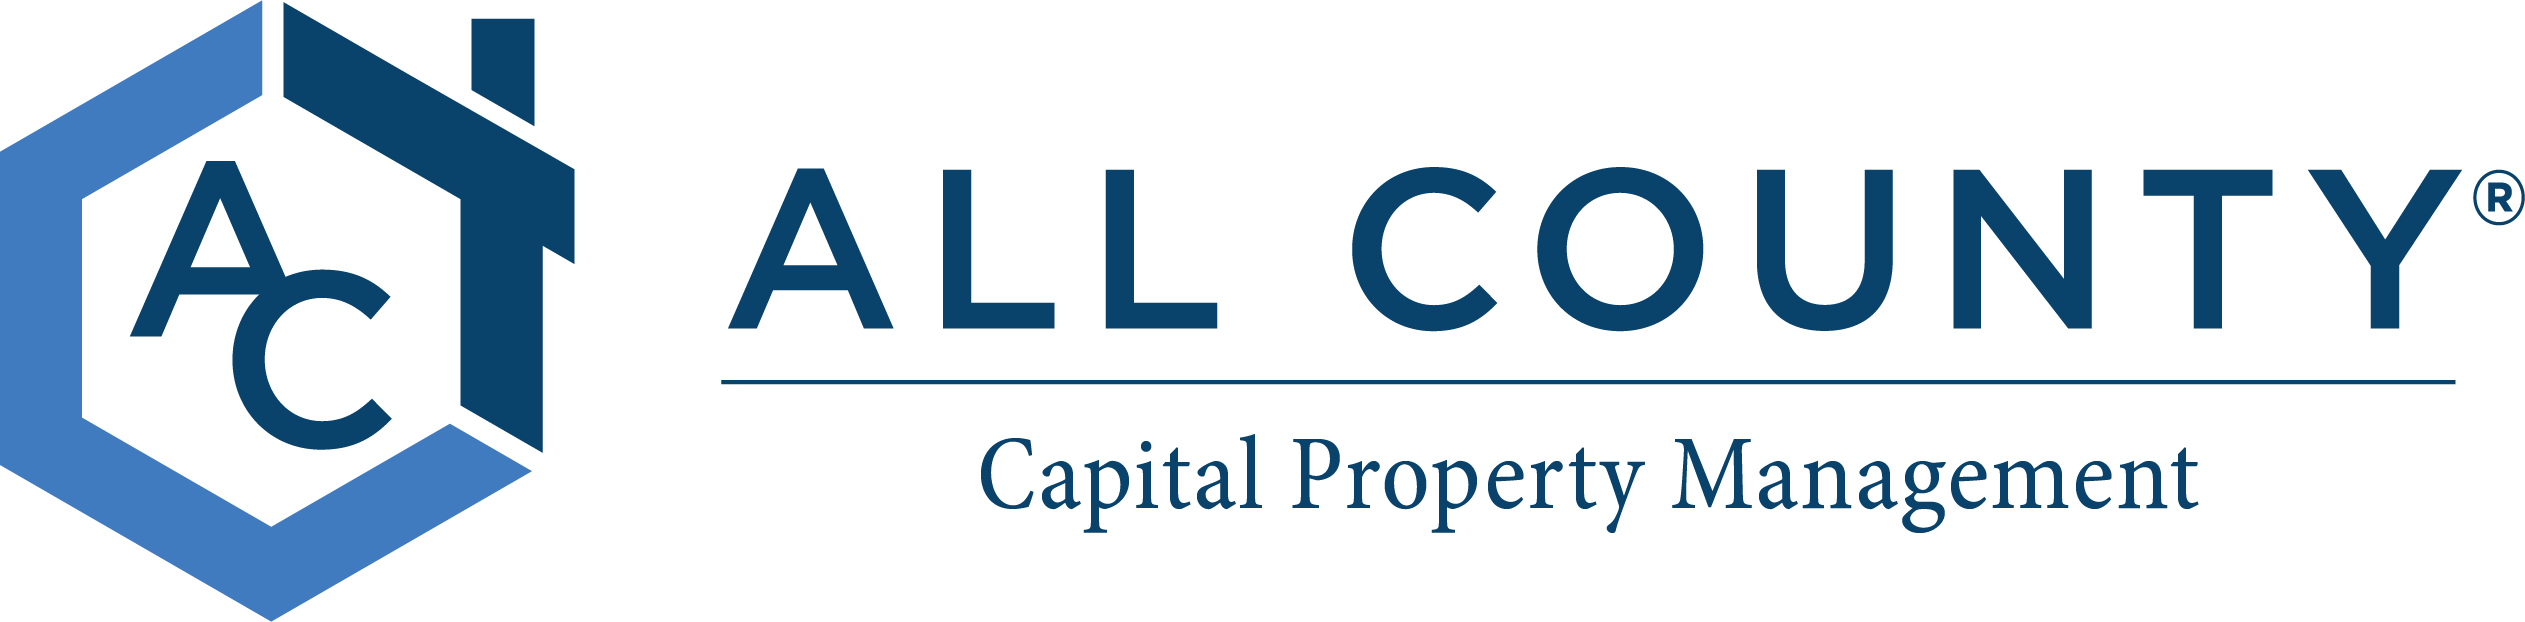 All County Capital Property Management